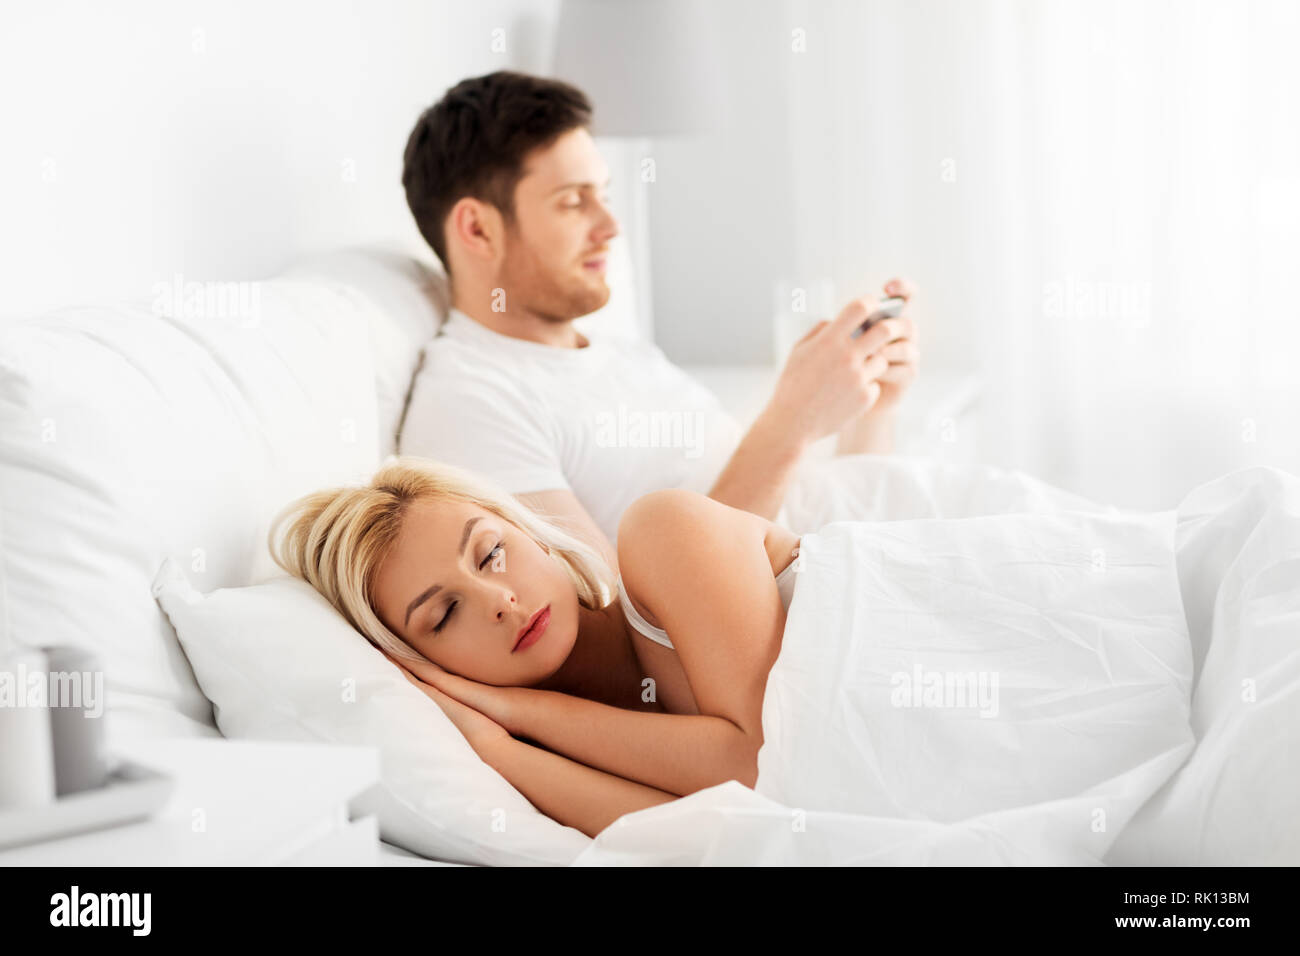 man using smartphone while woman is sleeping - Stock Image